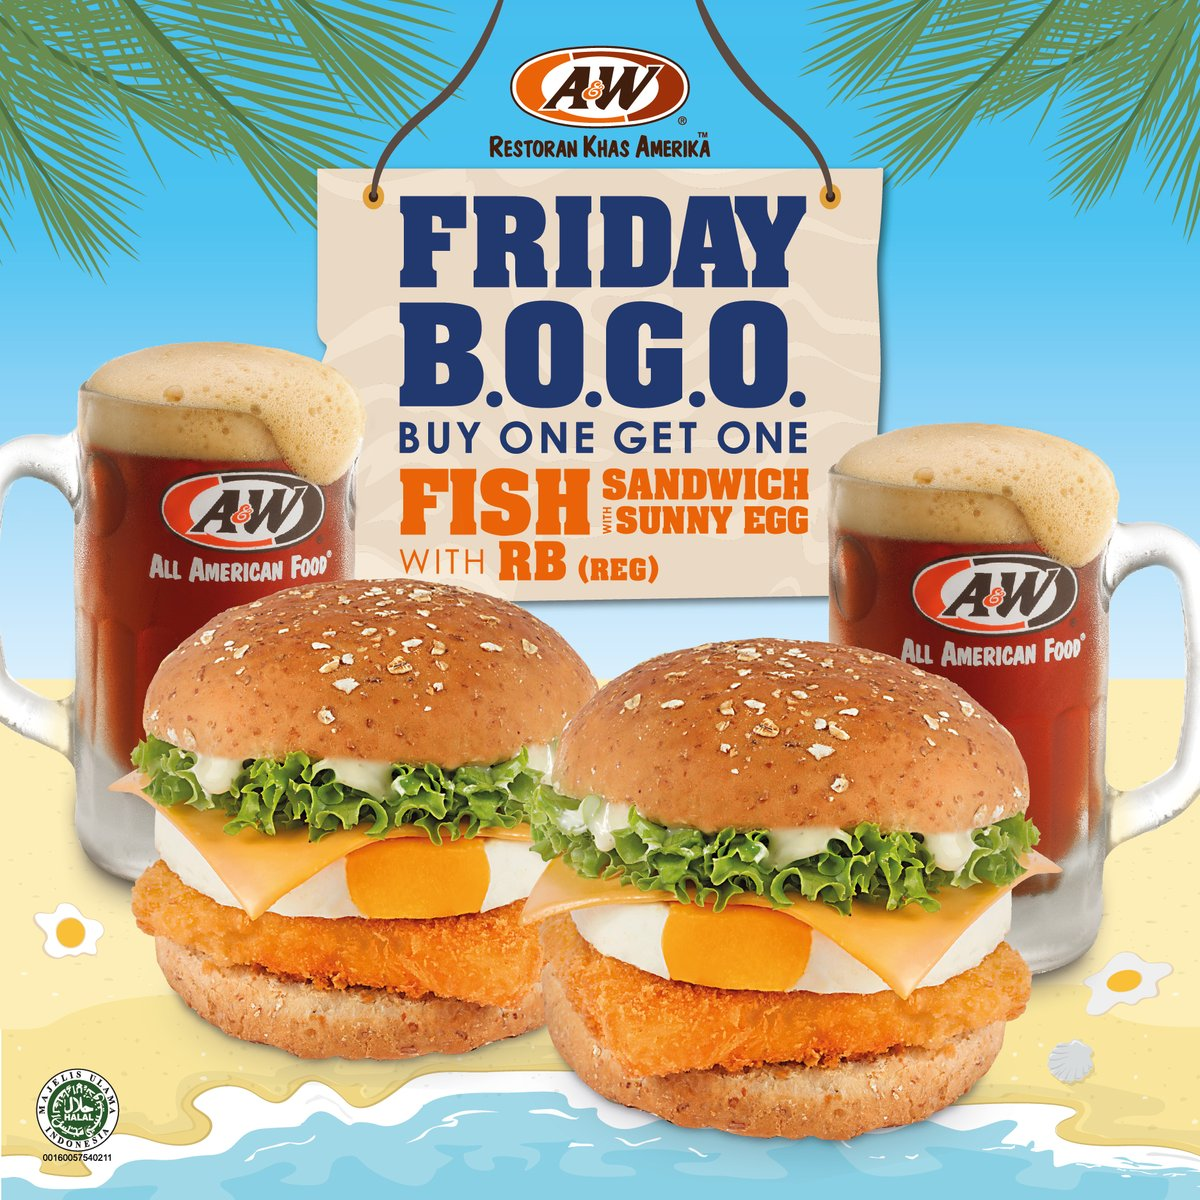 A&W - Promo Buy 1 Get 1 Fish Sandwich With Sunny Egg & RB